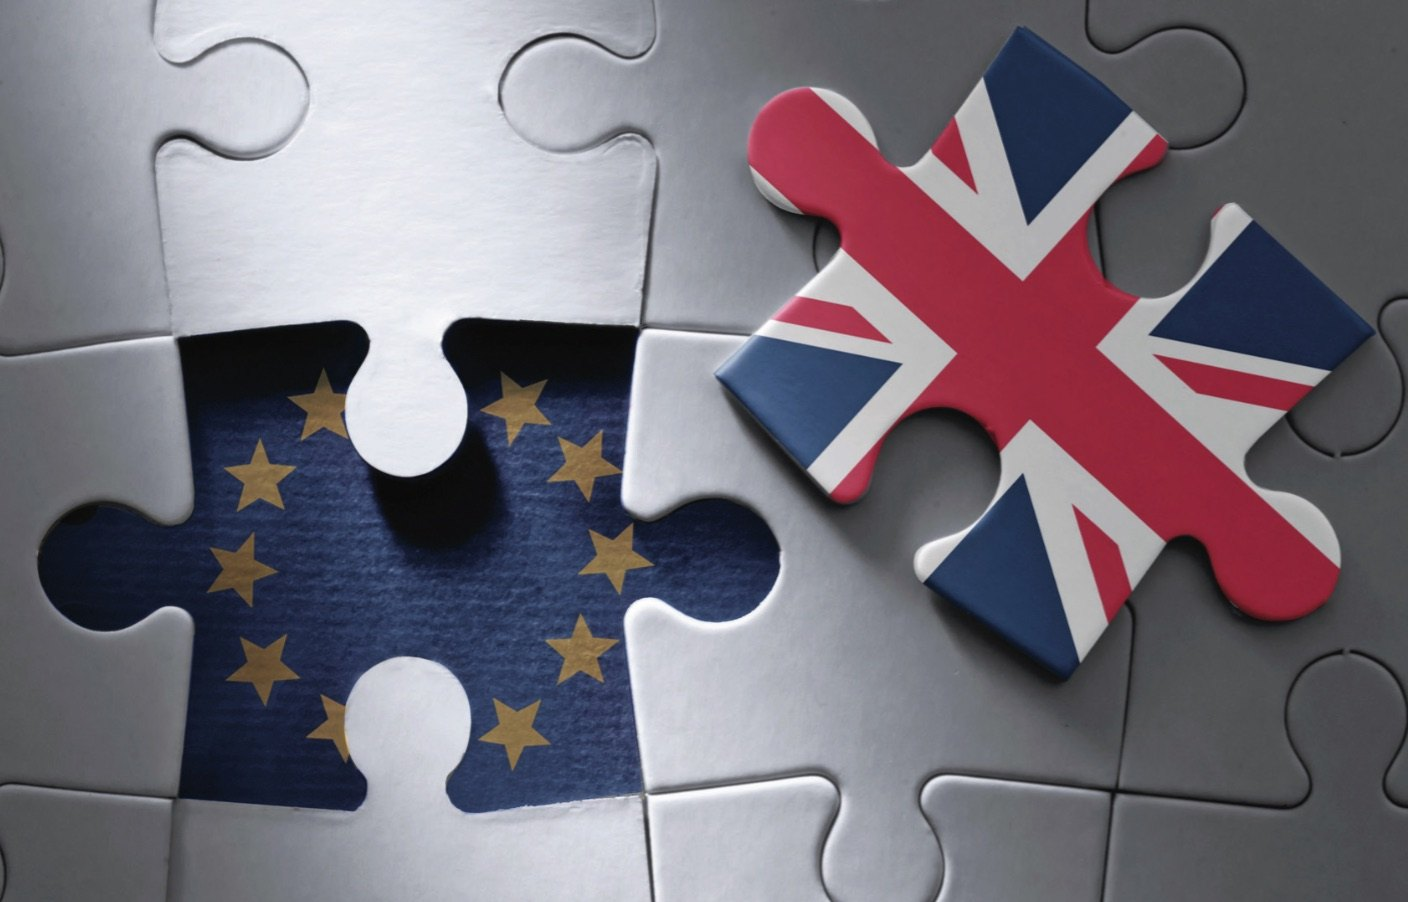 Q&A with Rick Cudworth, the Head of Deloitte Consulting's Brexit Center